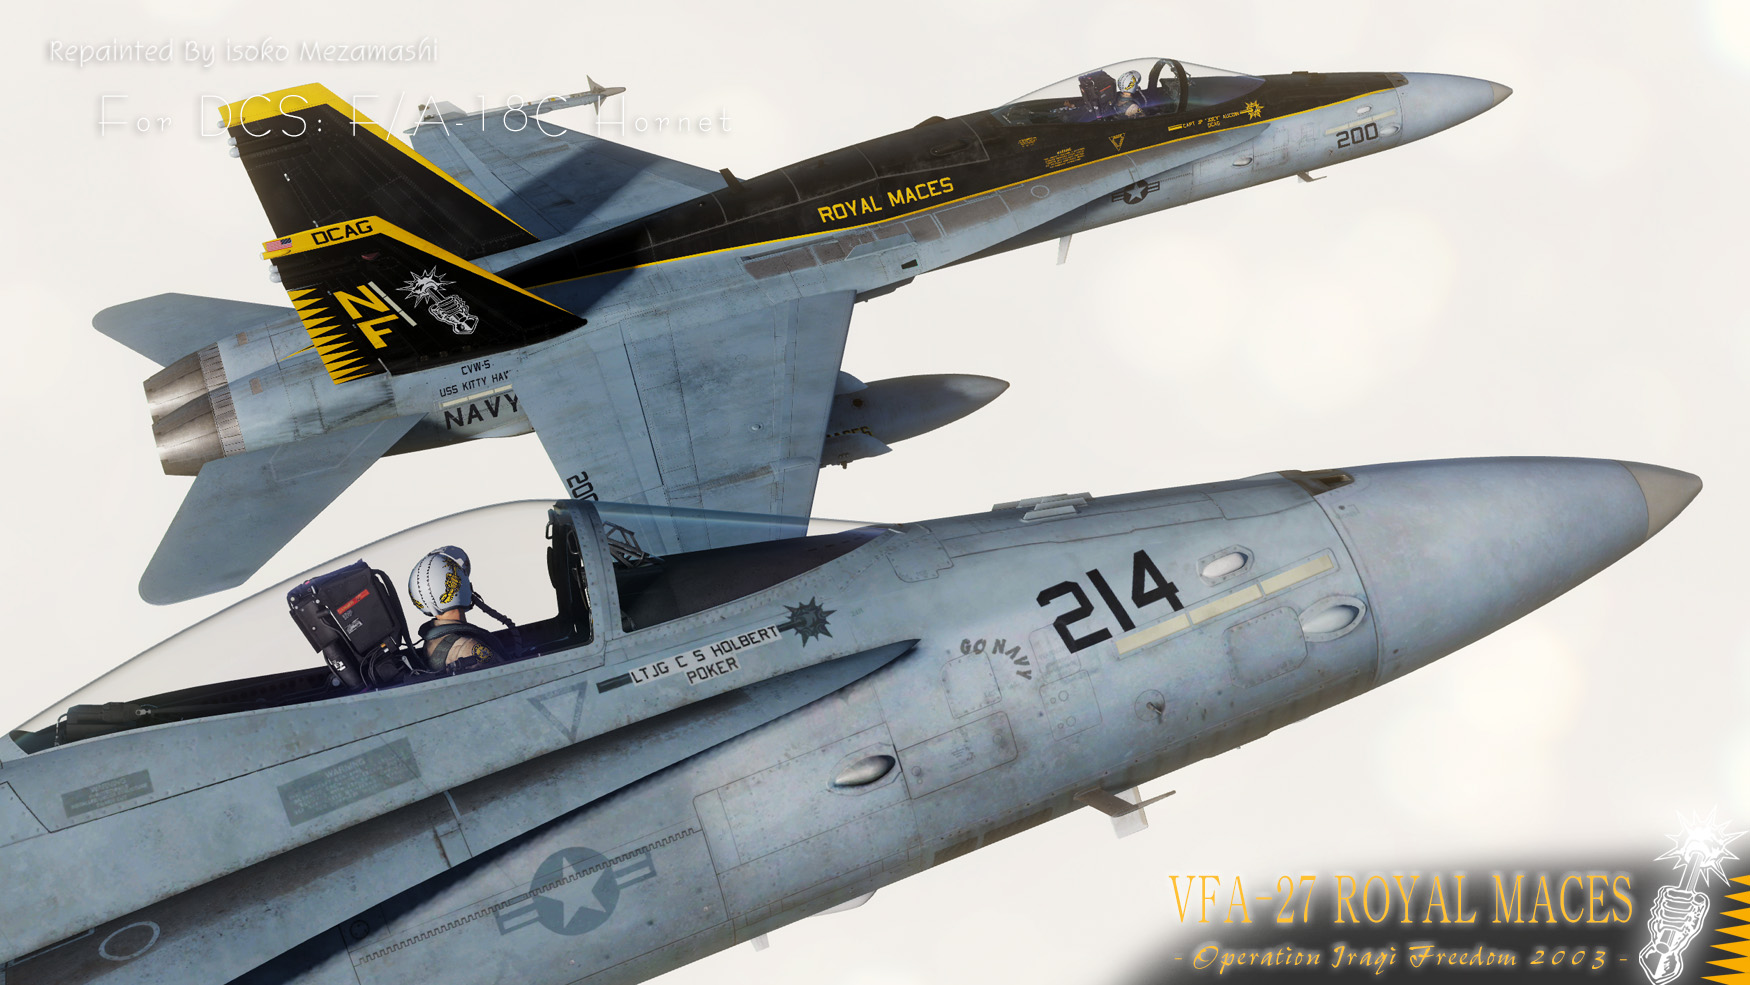 "F/A-18C HORNET ""VFA-27 ROYAL MACES"" 2003"